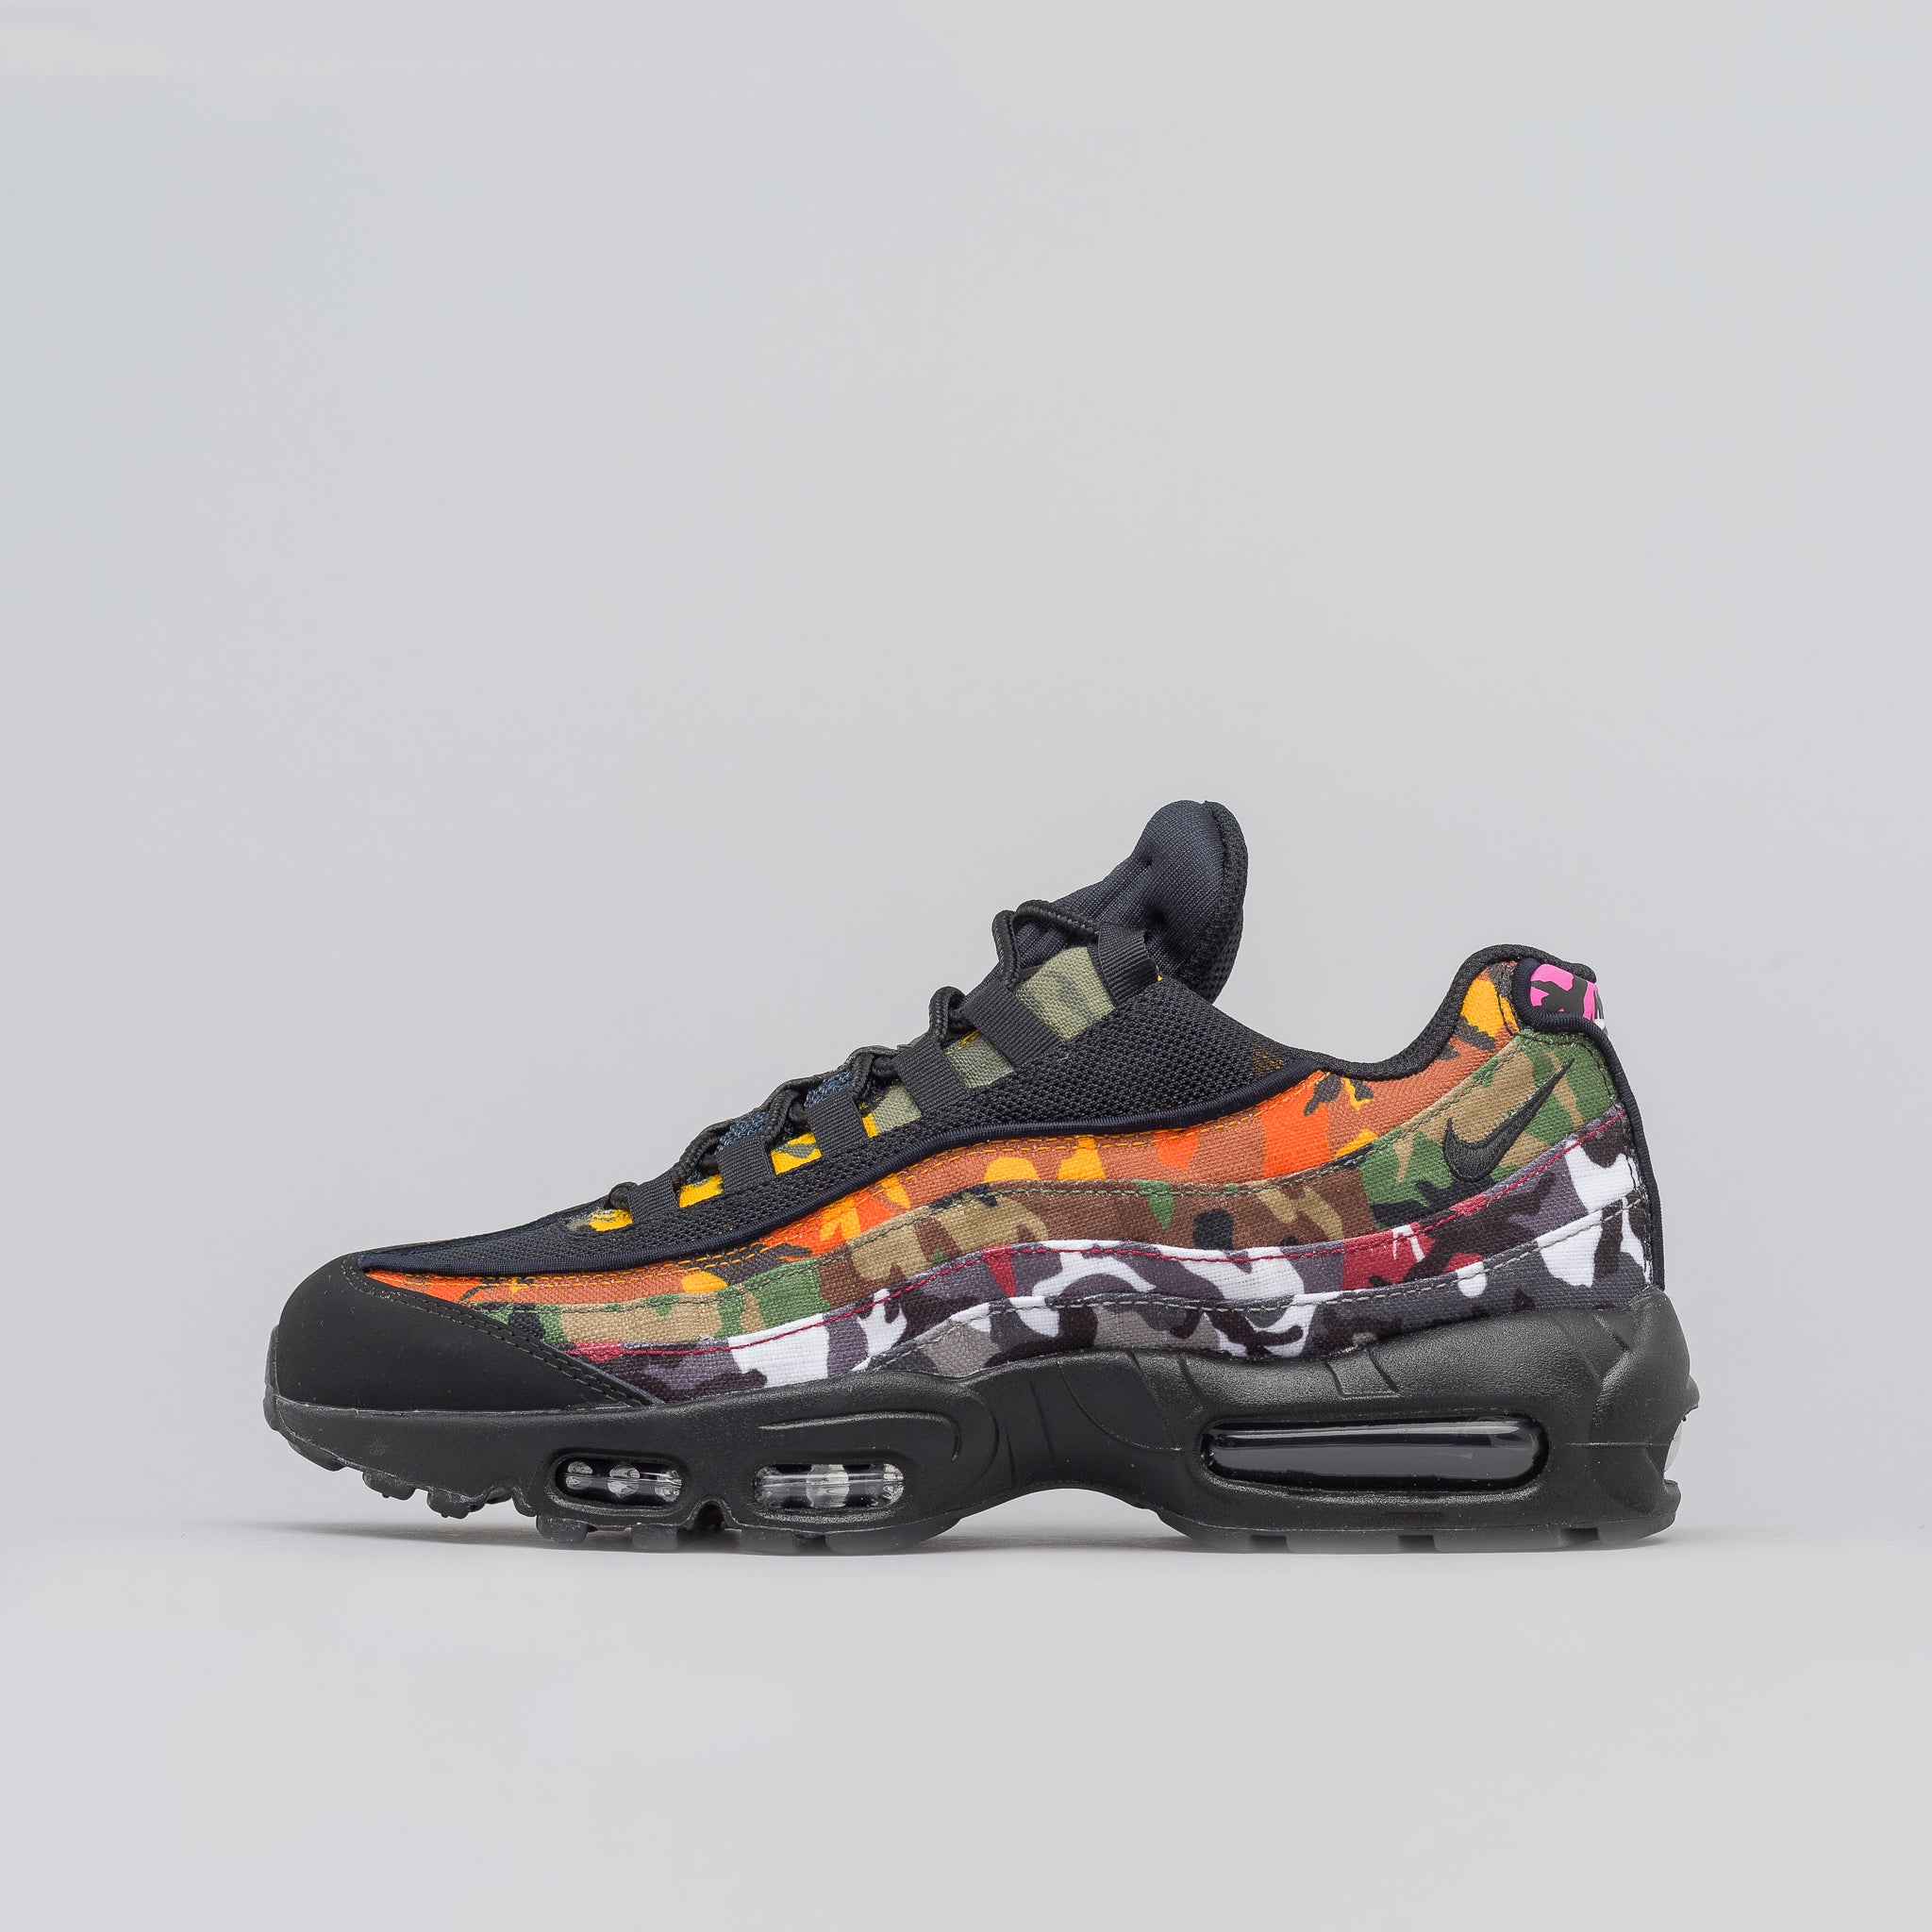 Air Max 95 ERDL Party in Black Camo